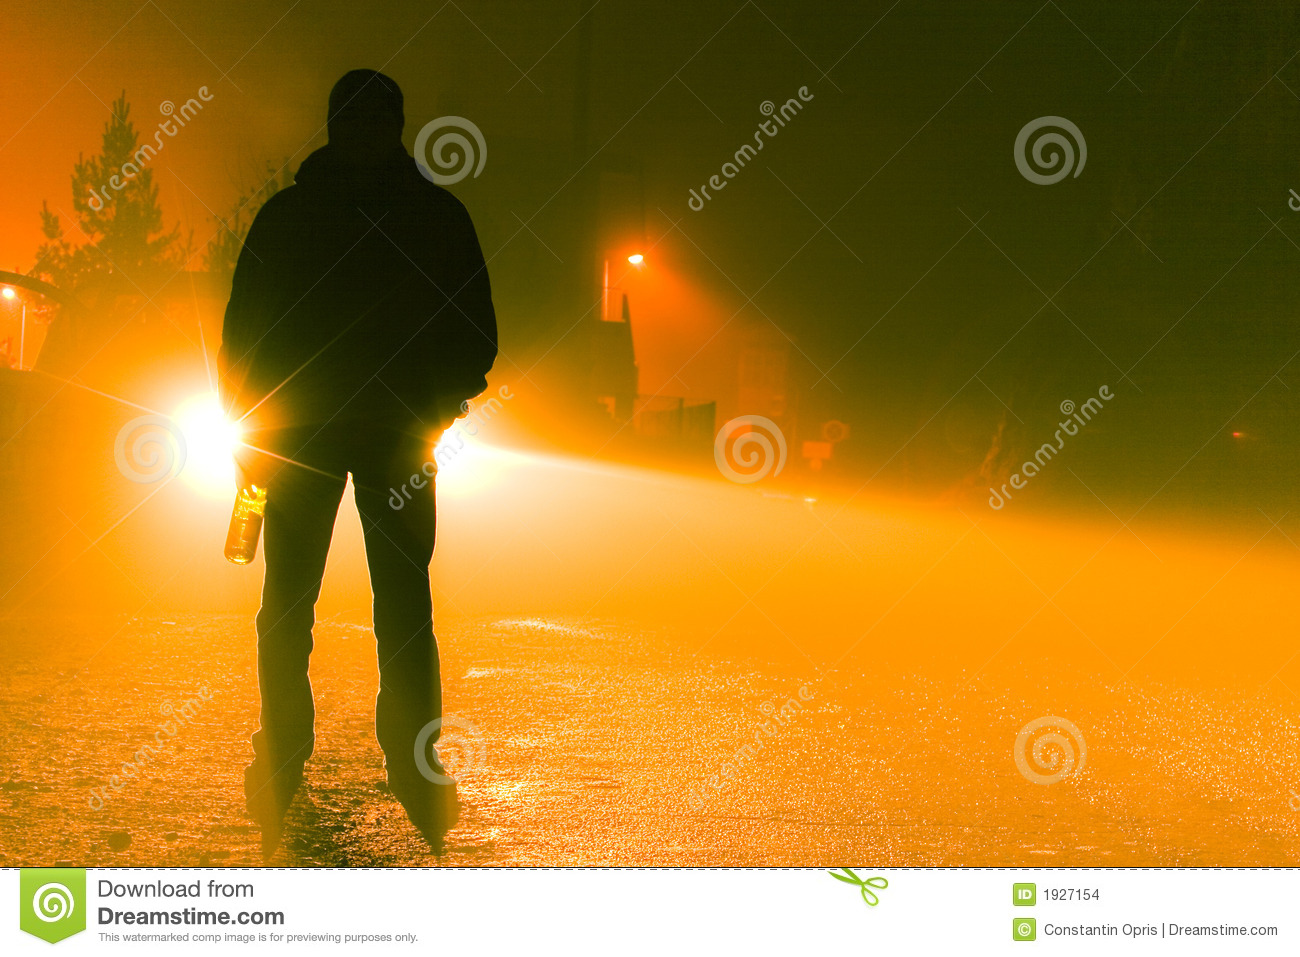 Silhouette Of A Drunk Person Standing On The Road On A Foggy Night